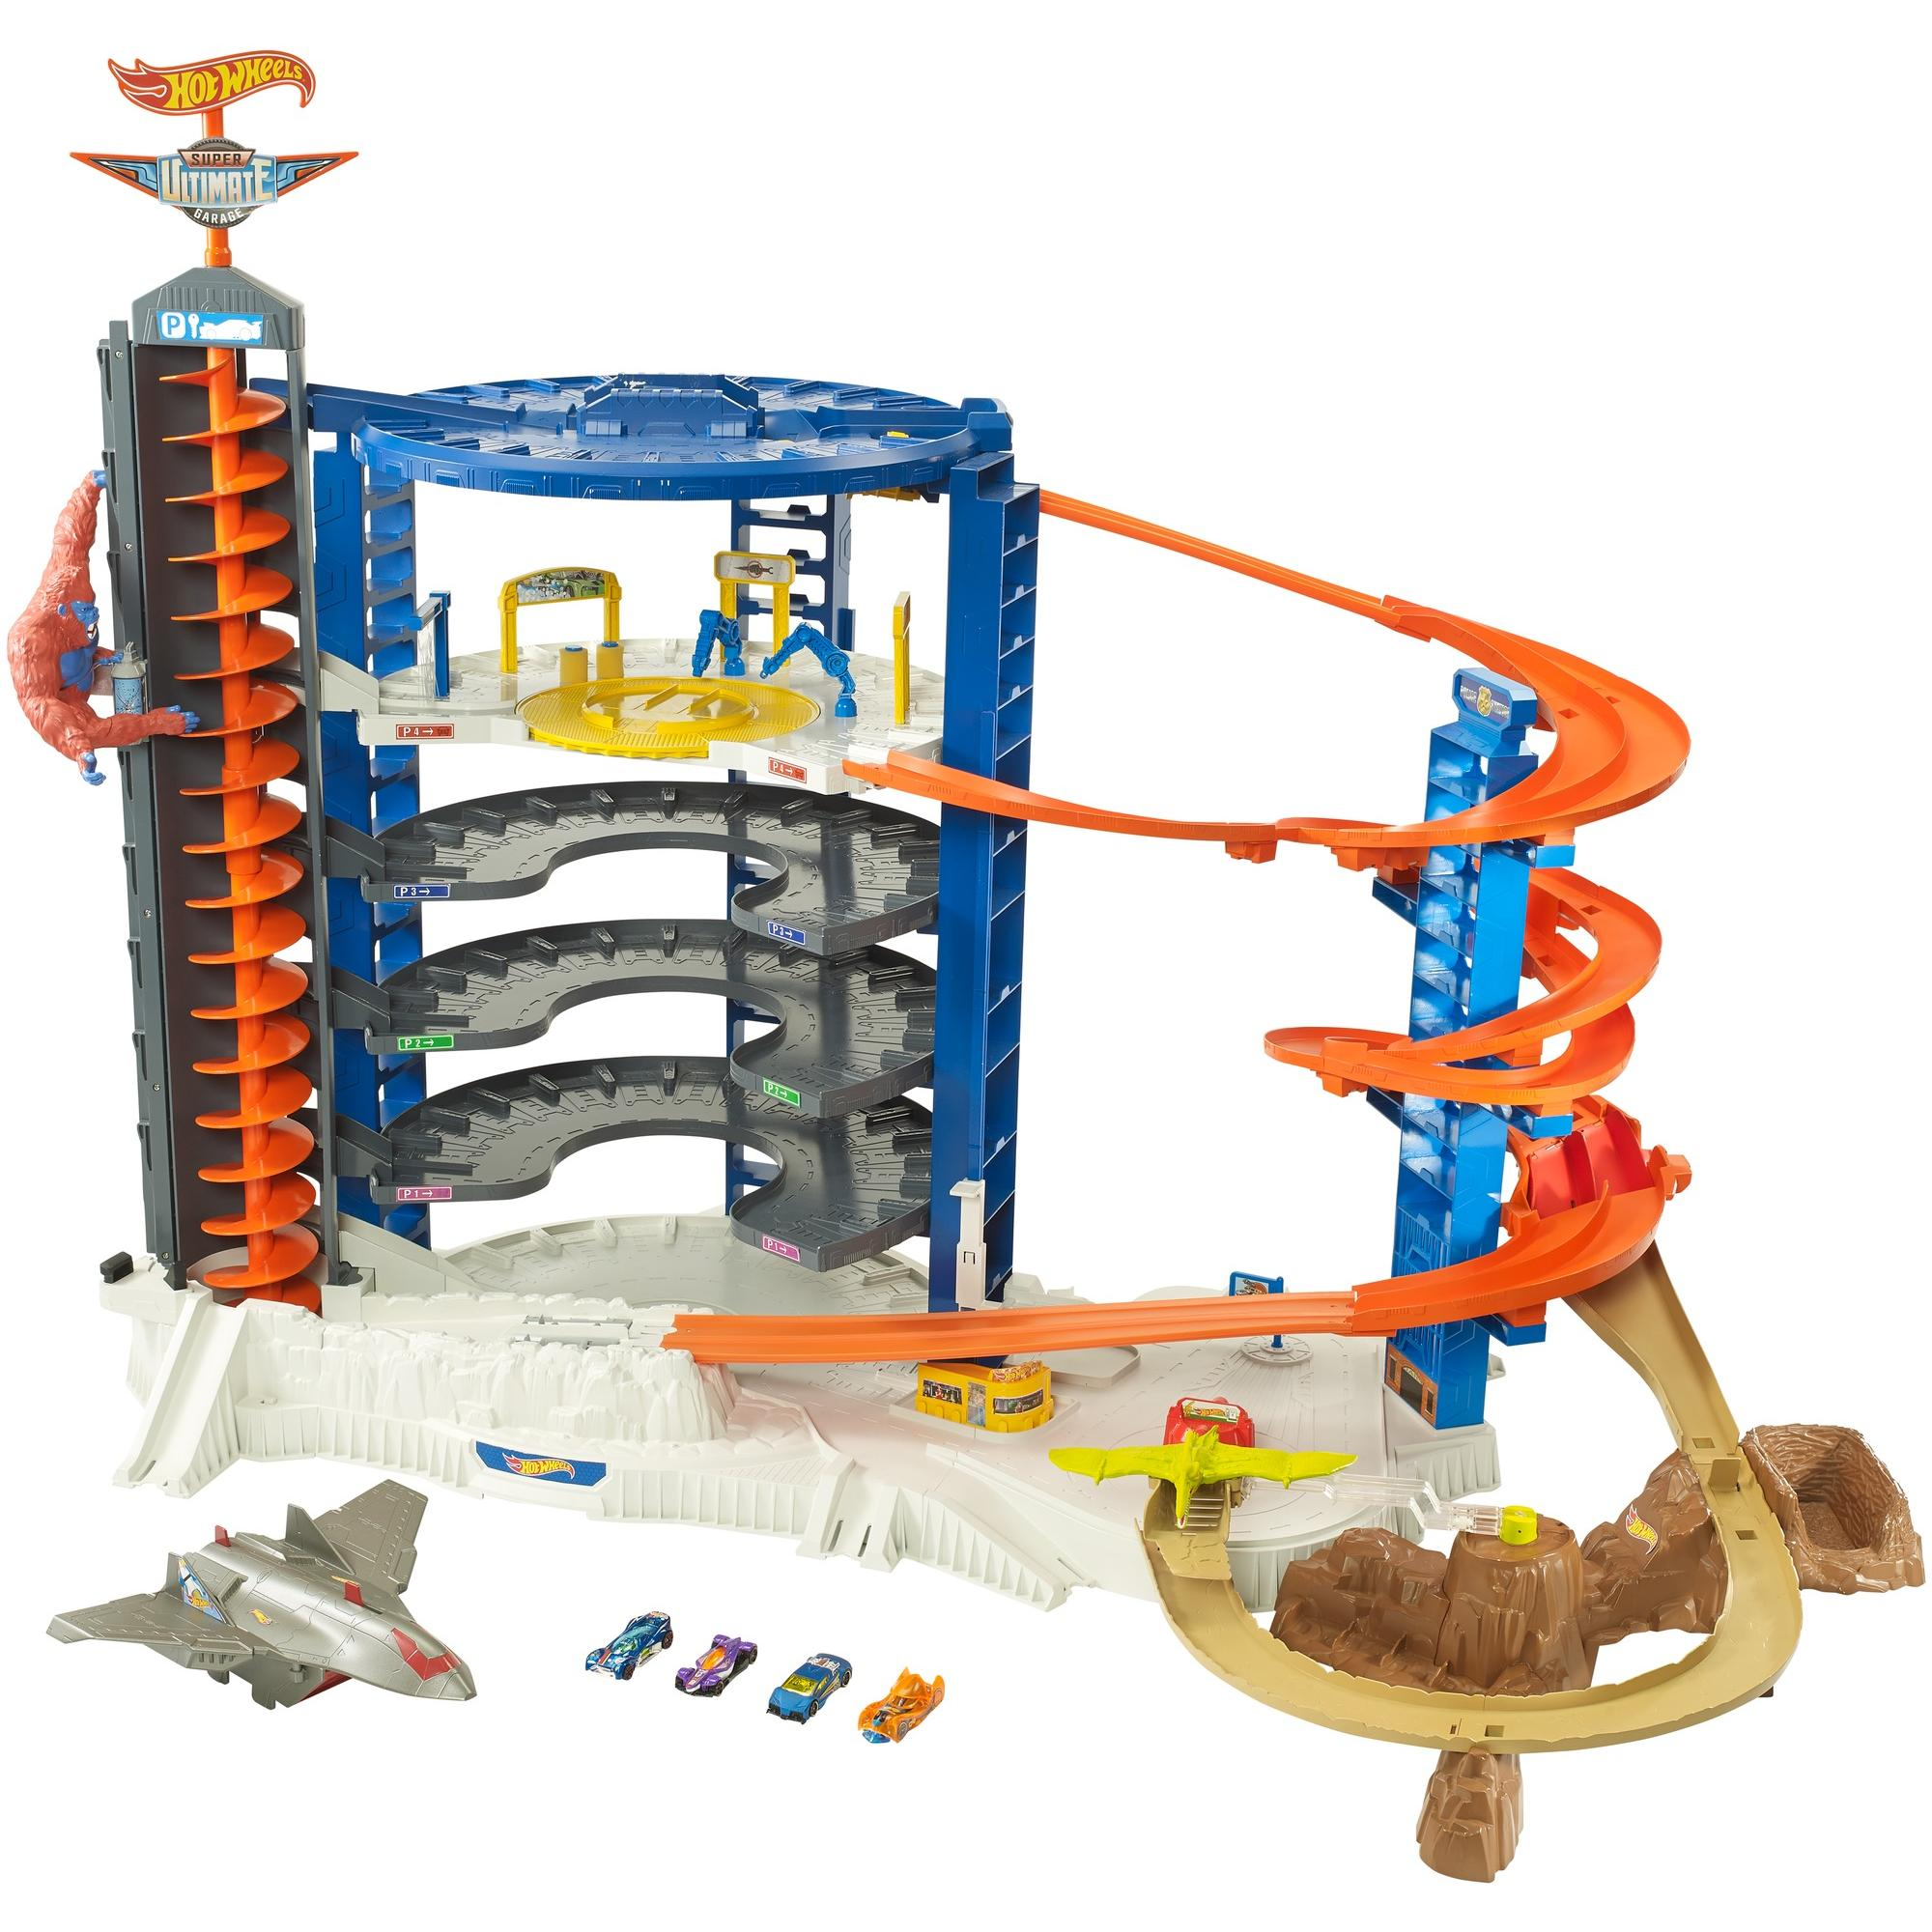 Hot Wheels Super Ultimate Garage Play Set 139 97